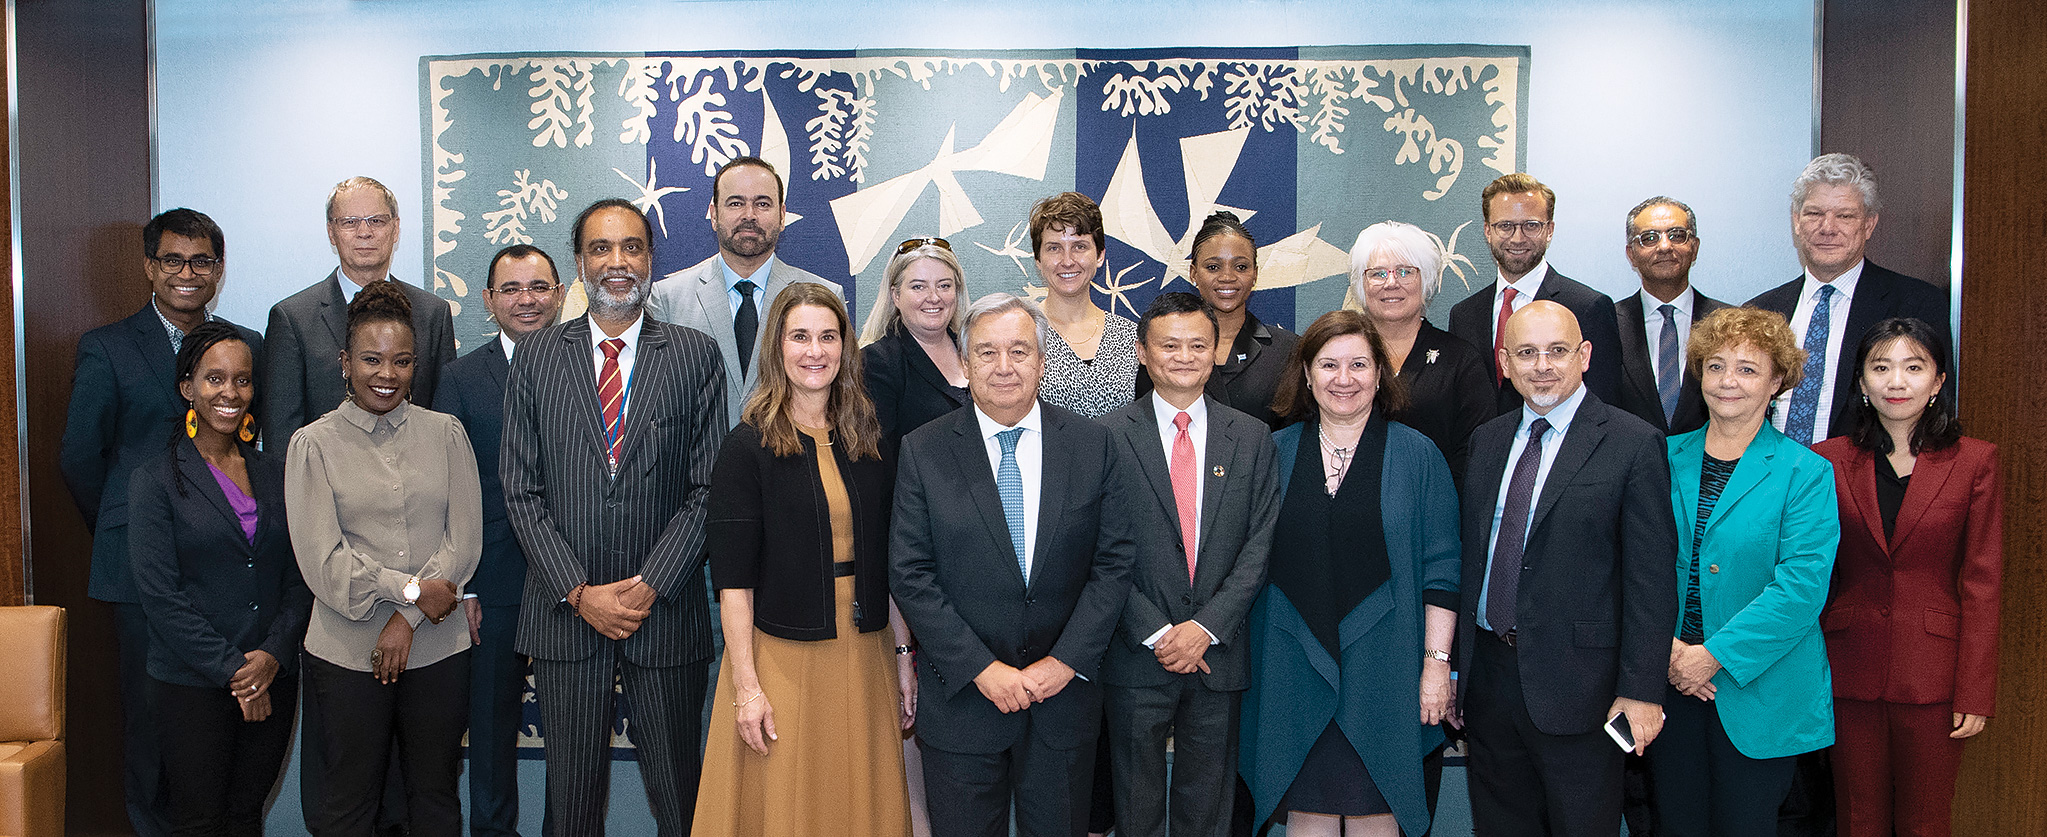 Secretary-General António Guterres (centre) meets with members of the High-level Panel on Digital Cooperation. He is flanked by Melinda Gates (left), Co-Chair of the Bill and Melinda Gates Foundation, and Jack Ma (right), Founder and Executive Chairman of the Alibaba Group.